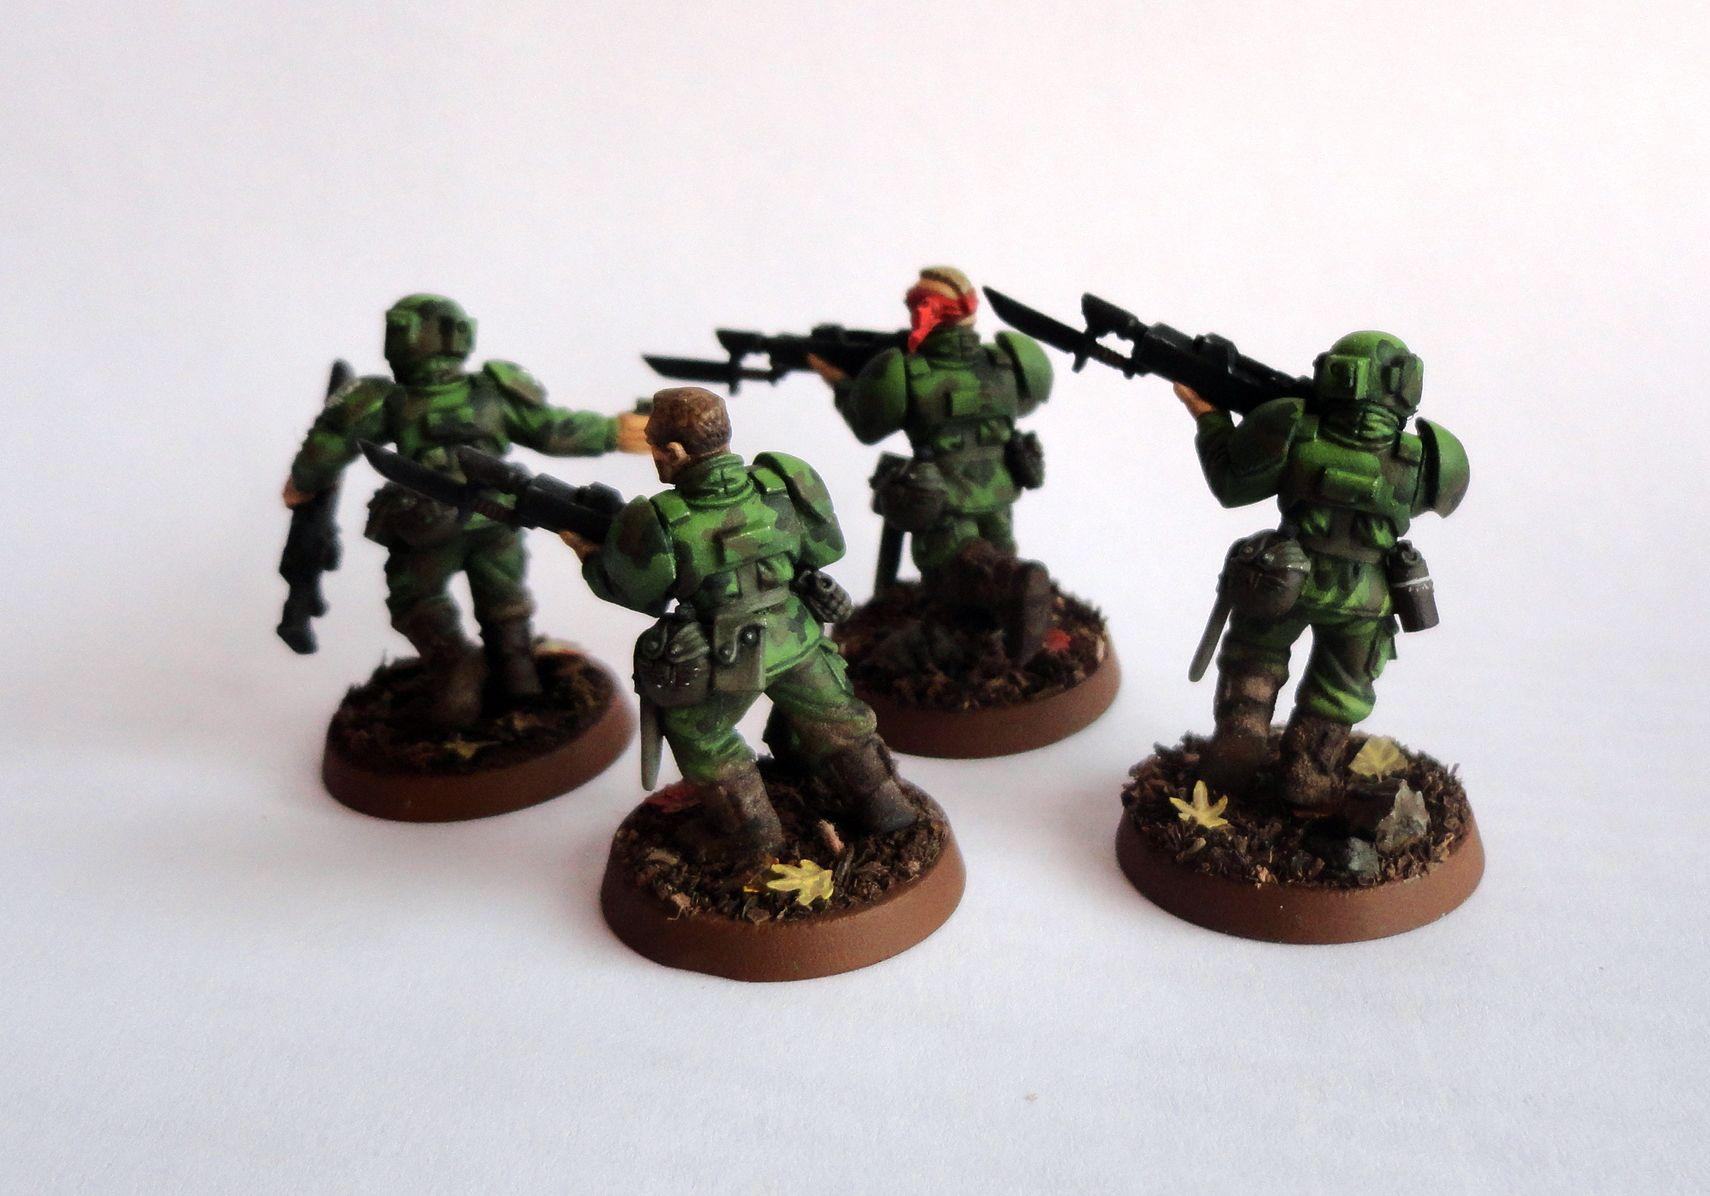 Astra Militarum, Cadians, Camouflage, Imperial Guard, Infantry Squad